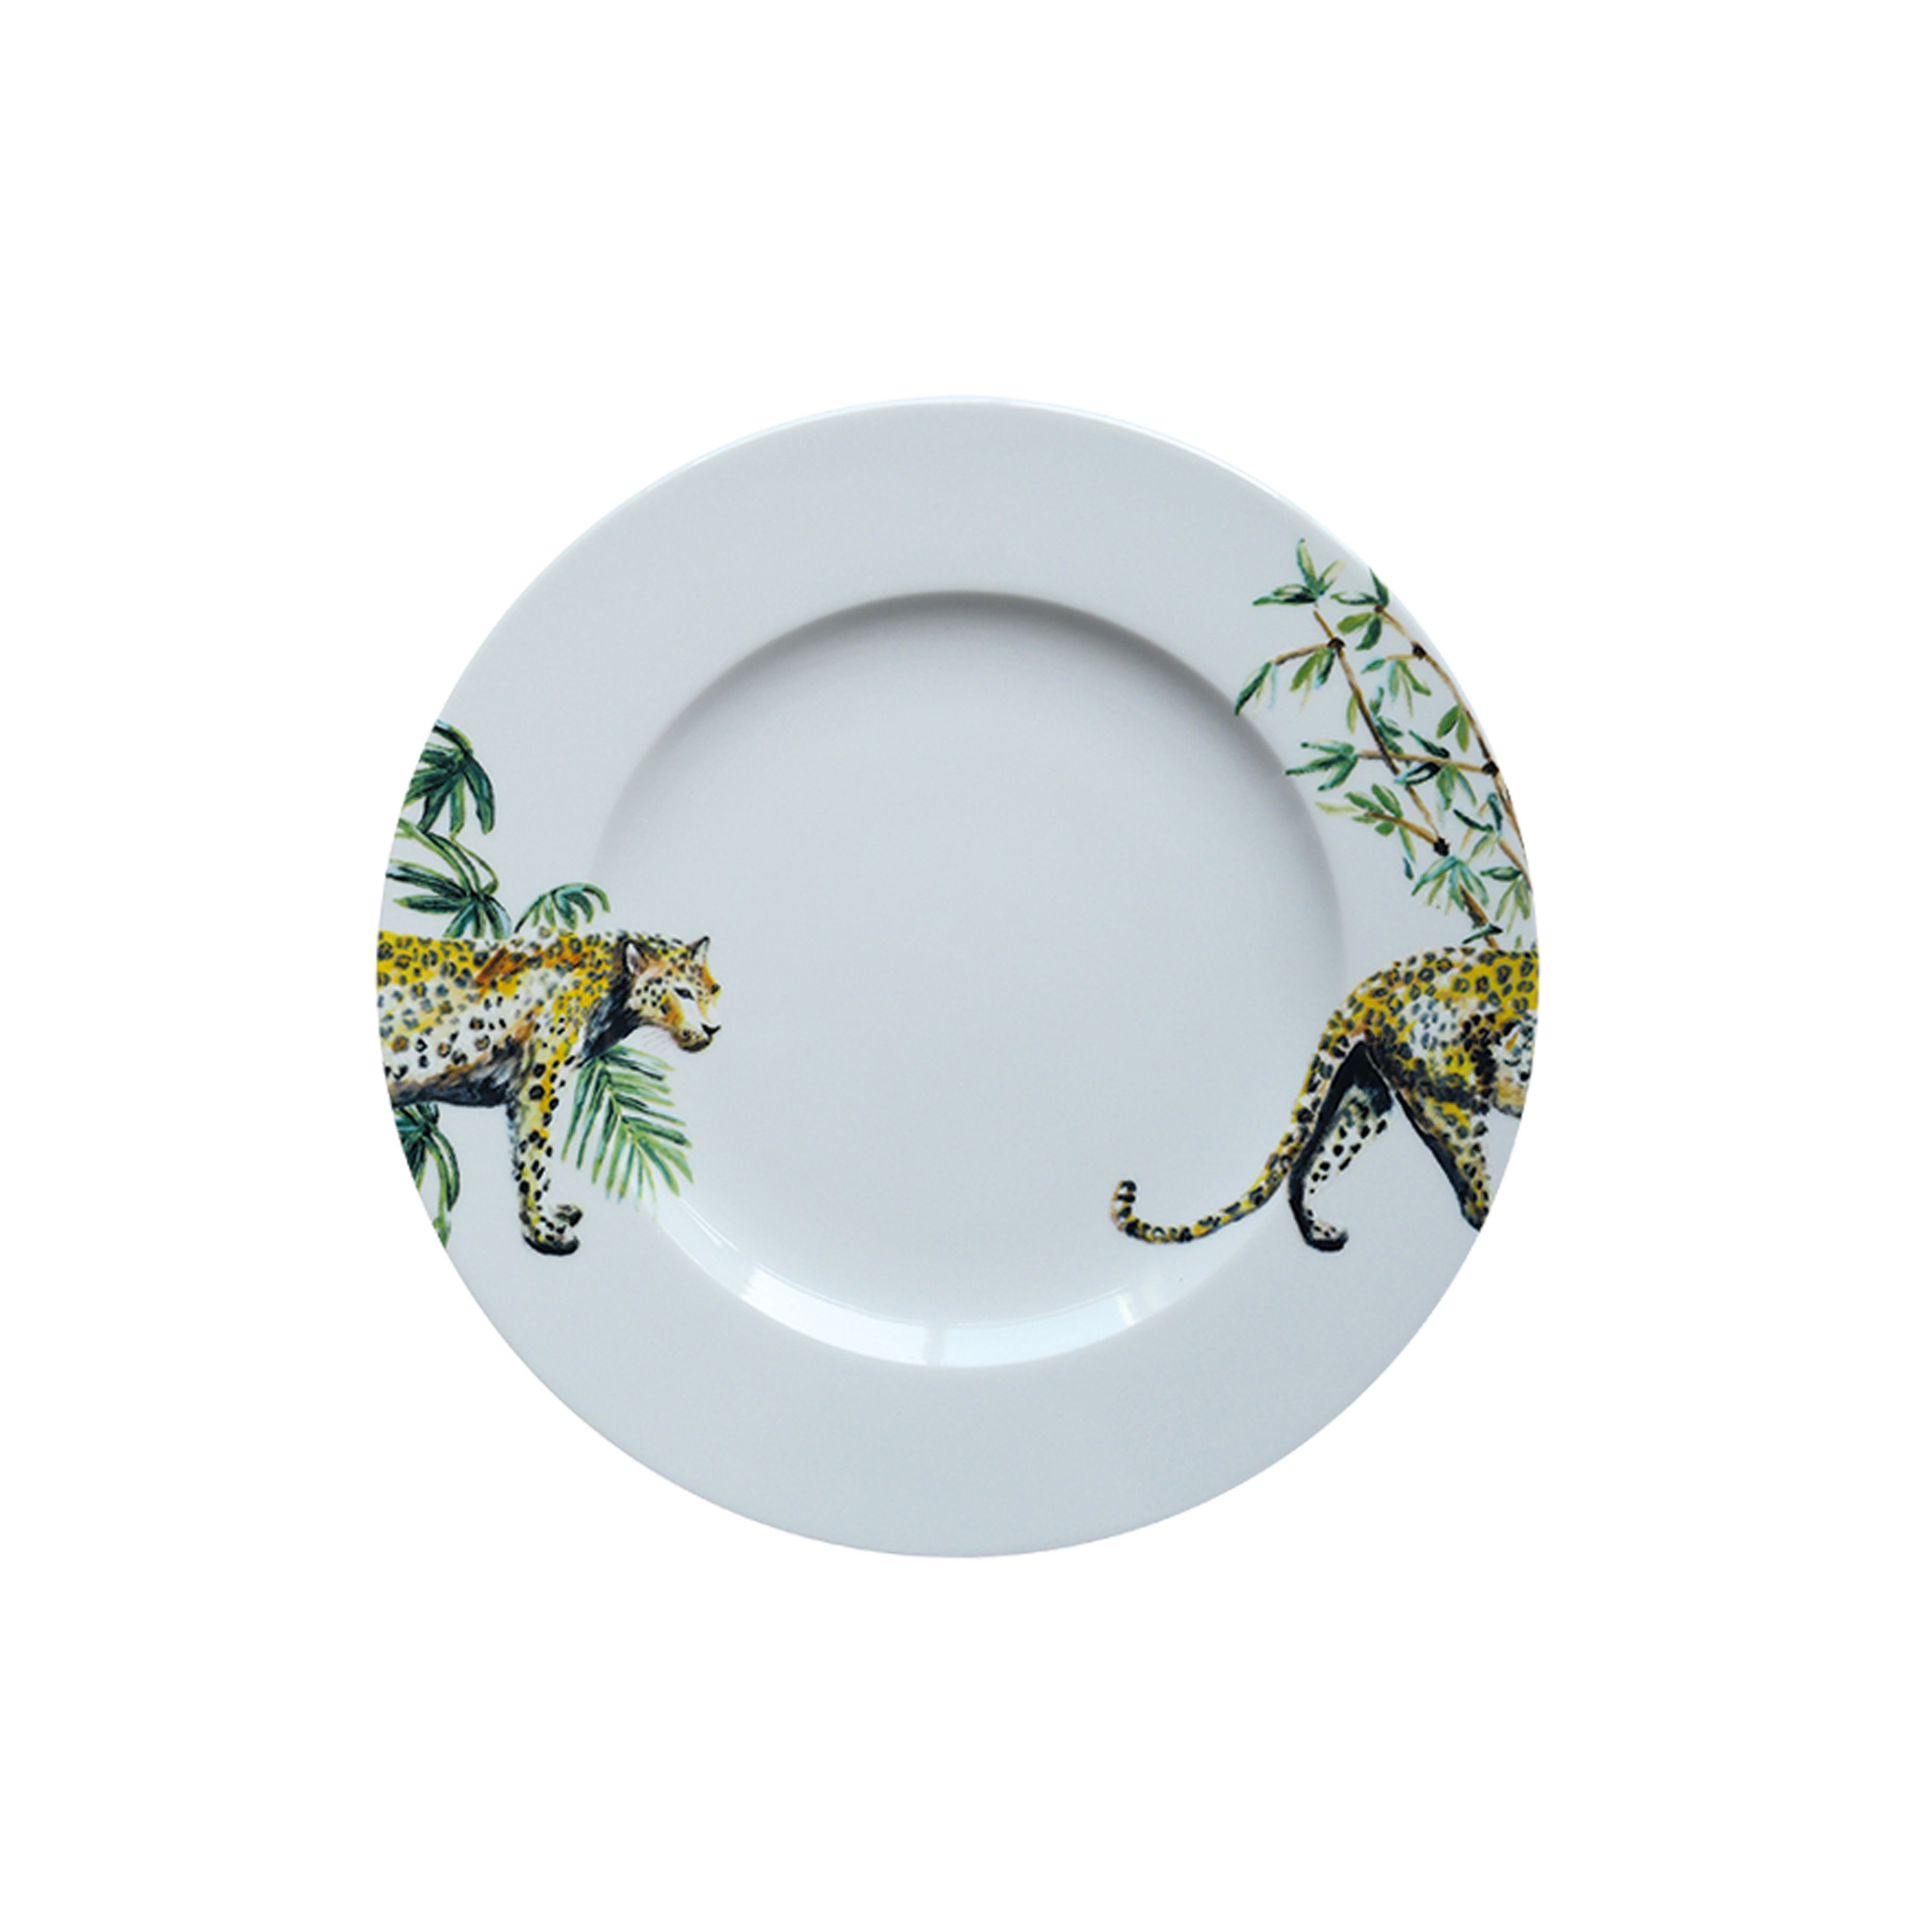 Catchii porcelain dinnerware dutch design new collection microwave safe dishwasher safe  sc 1 st  Pinterest & Catchii porcelain dinnerware dutch design new collection ...